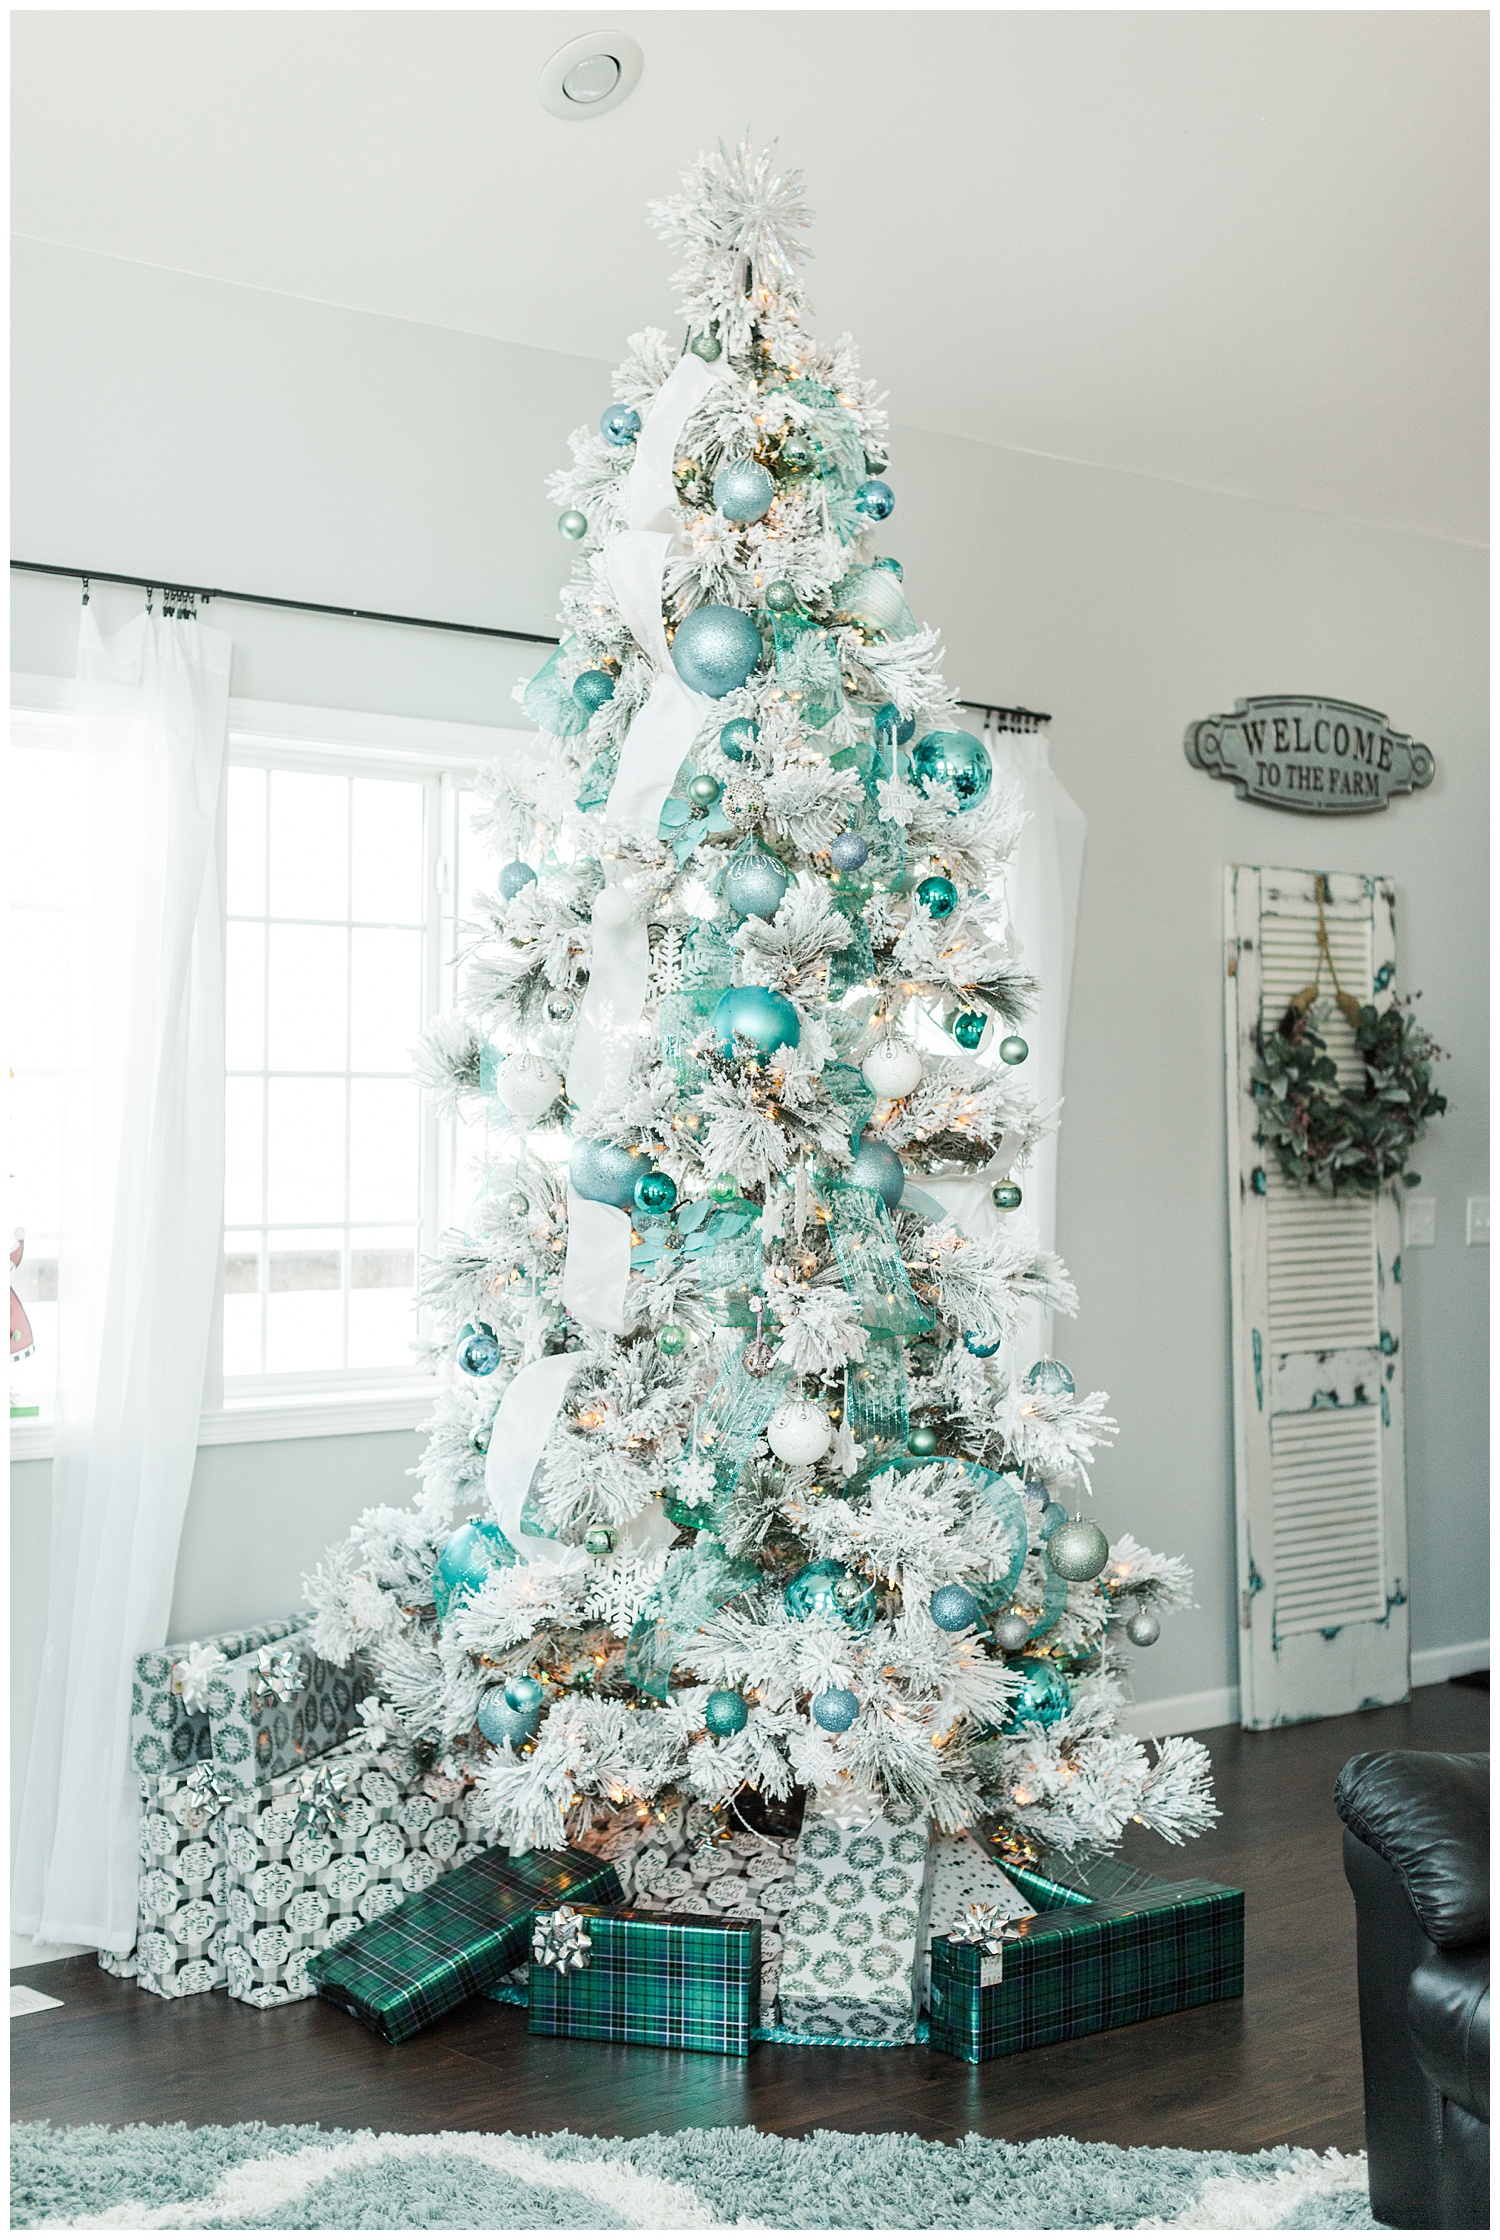 Flocked Christmas tree decorated with white and teal ribbon and teal, light blue and aqua ornaments   CB Studio